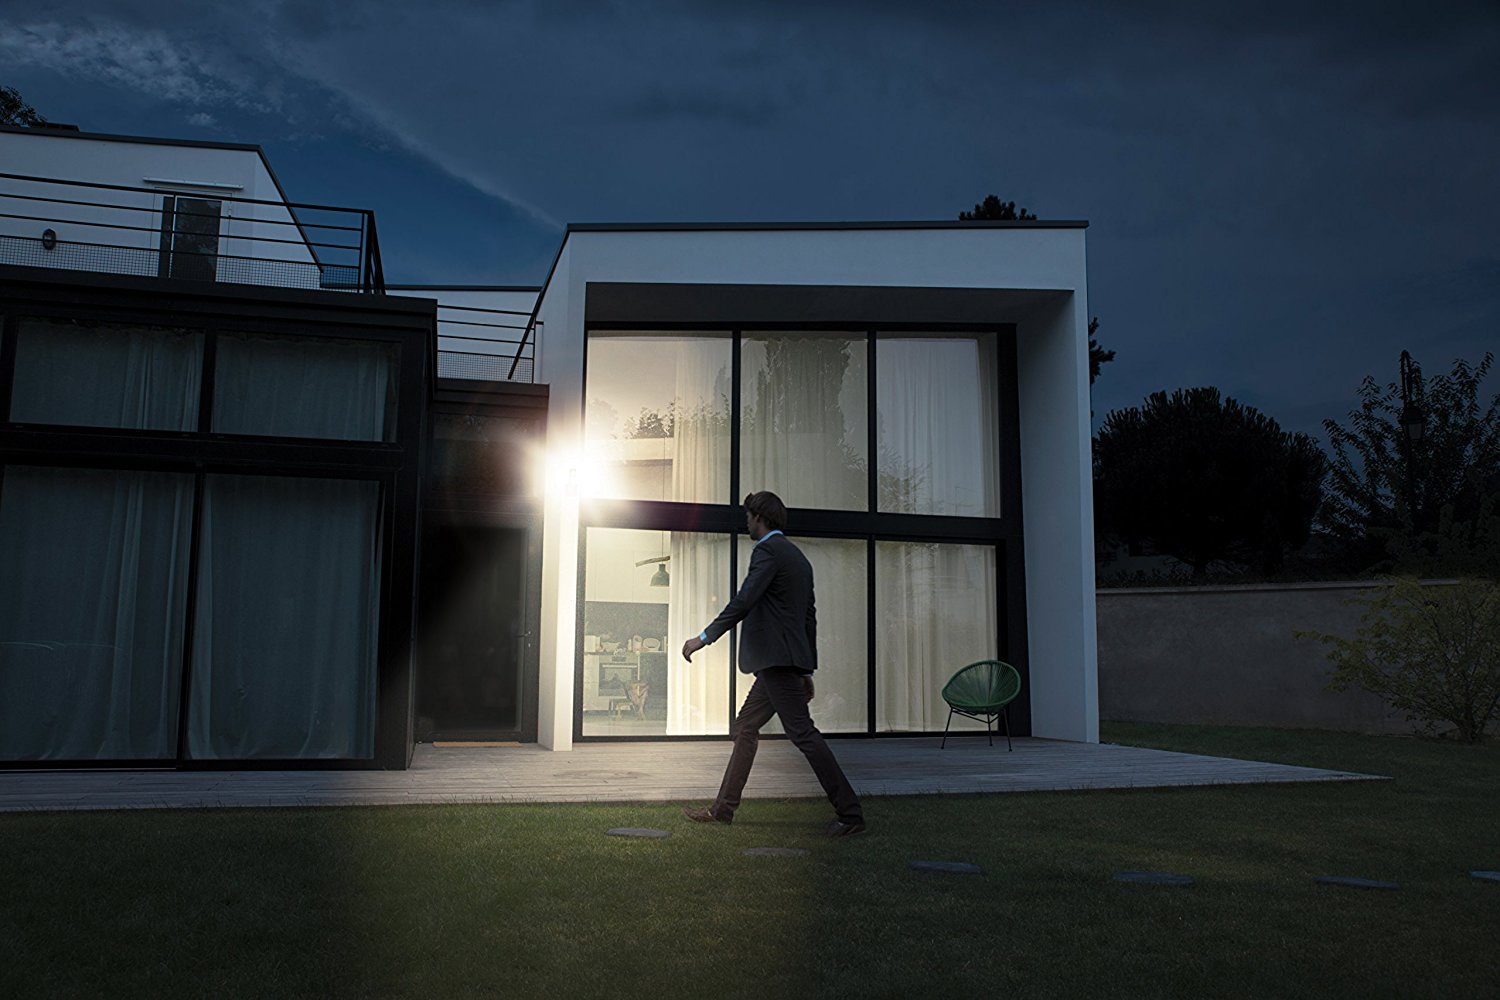 Outdoor Security Light with WiFi Cameras - Best Buys 2019